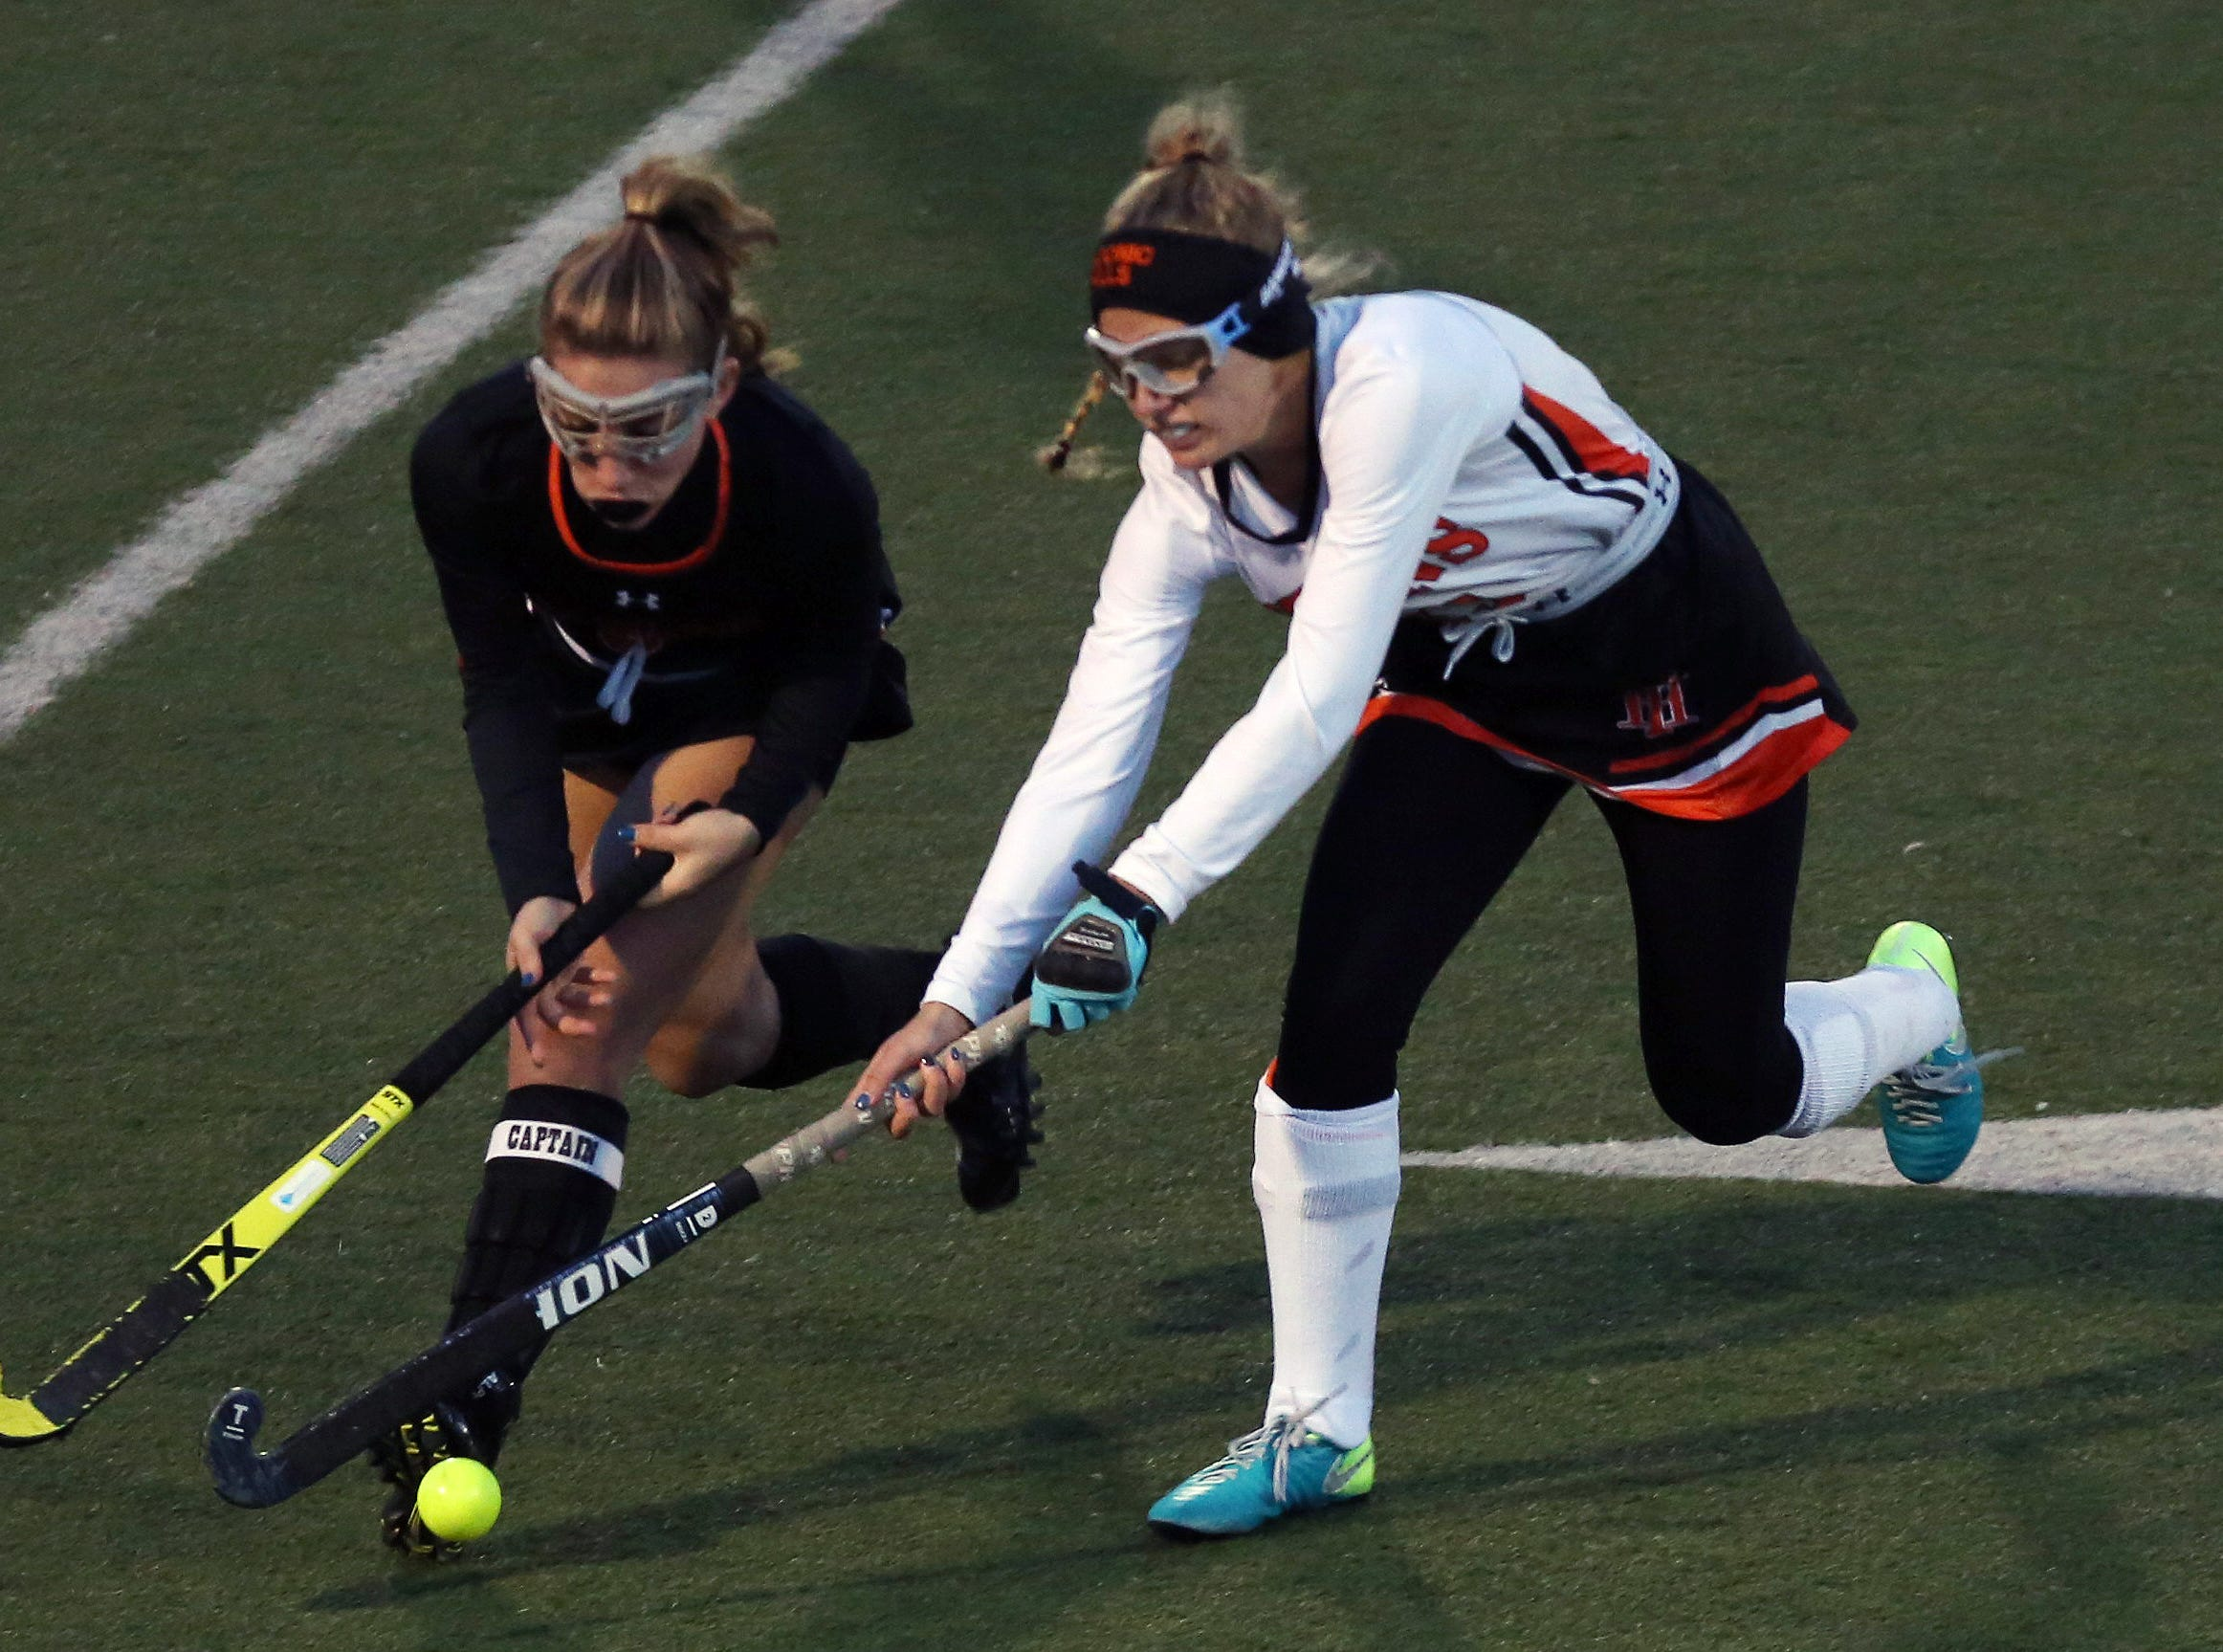 Pawling's Francesca Fleming (6) battles for ball control with Taconic Hills' Delana Bonci (13) during the Class C field hockey regional semifinal at Dietz Stadium in Kingston Oct. 30, 2018.